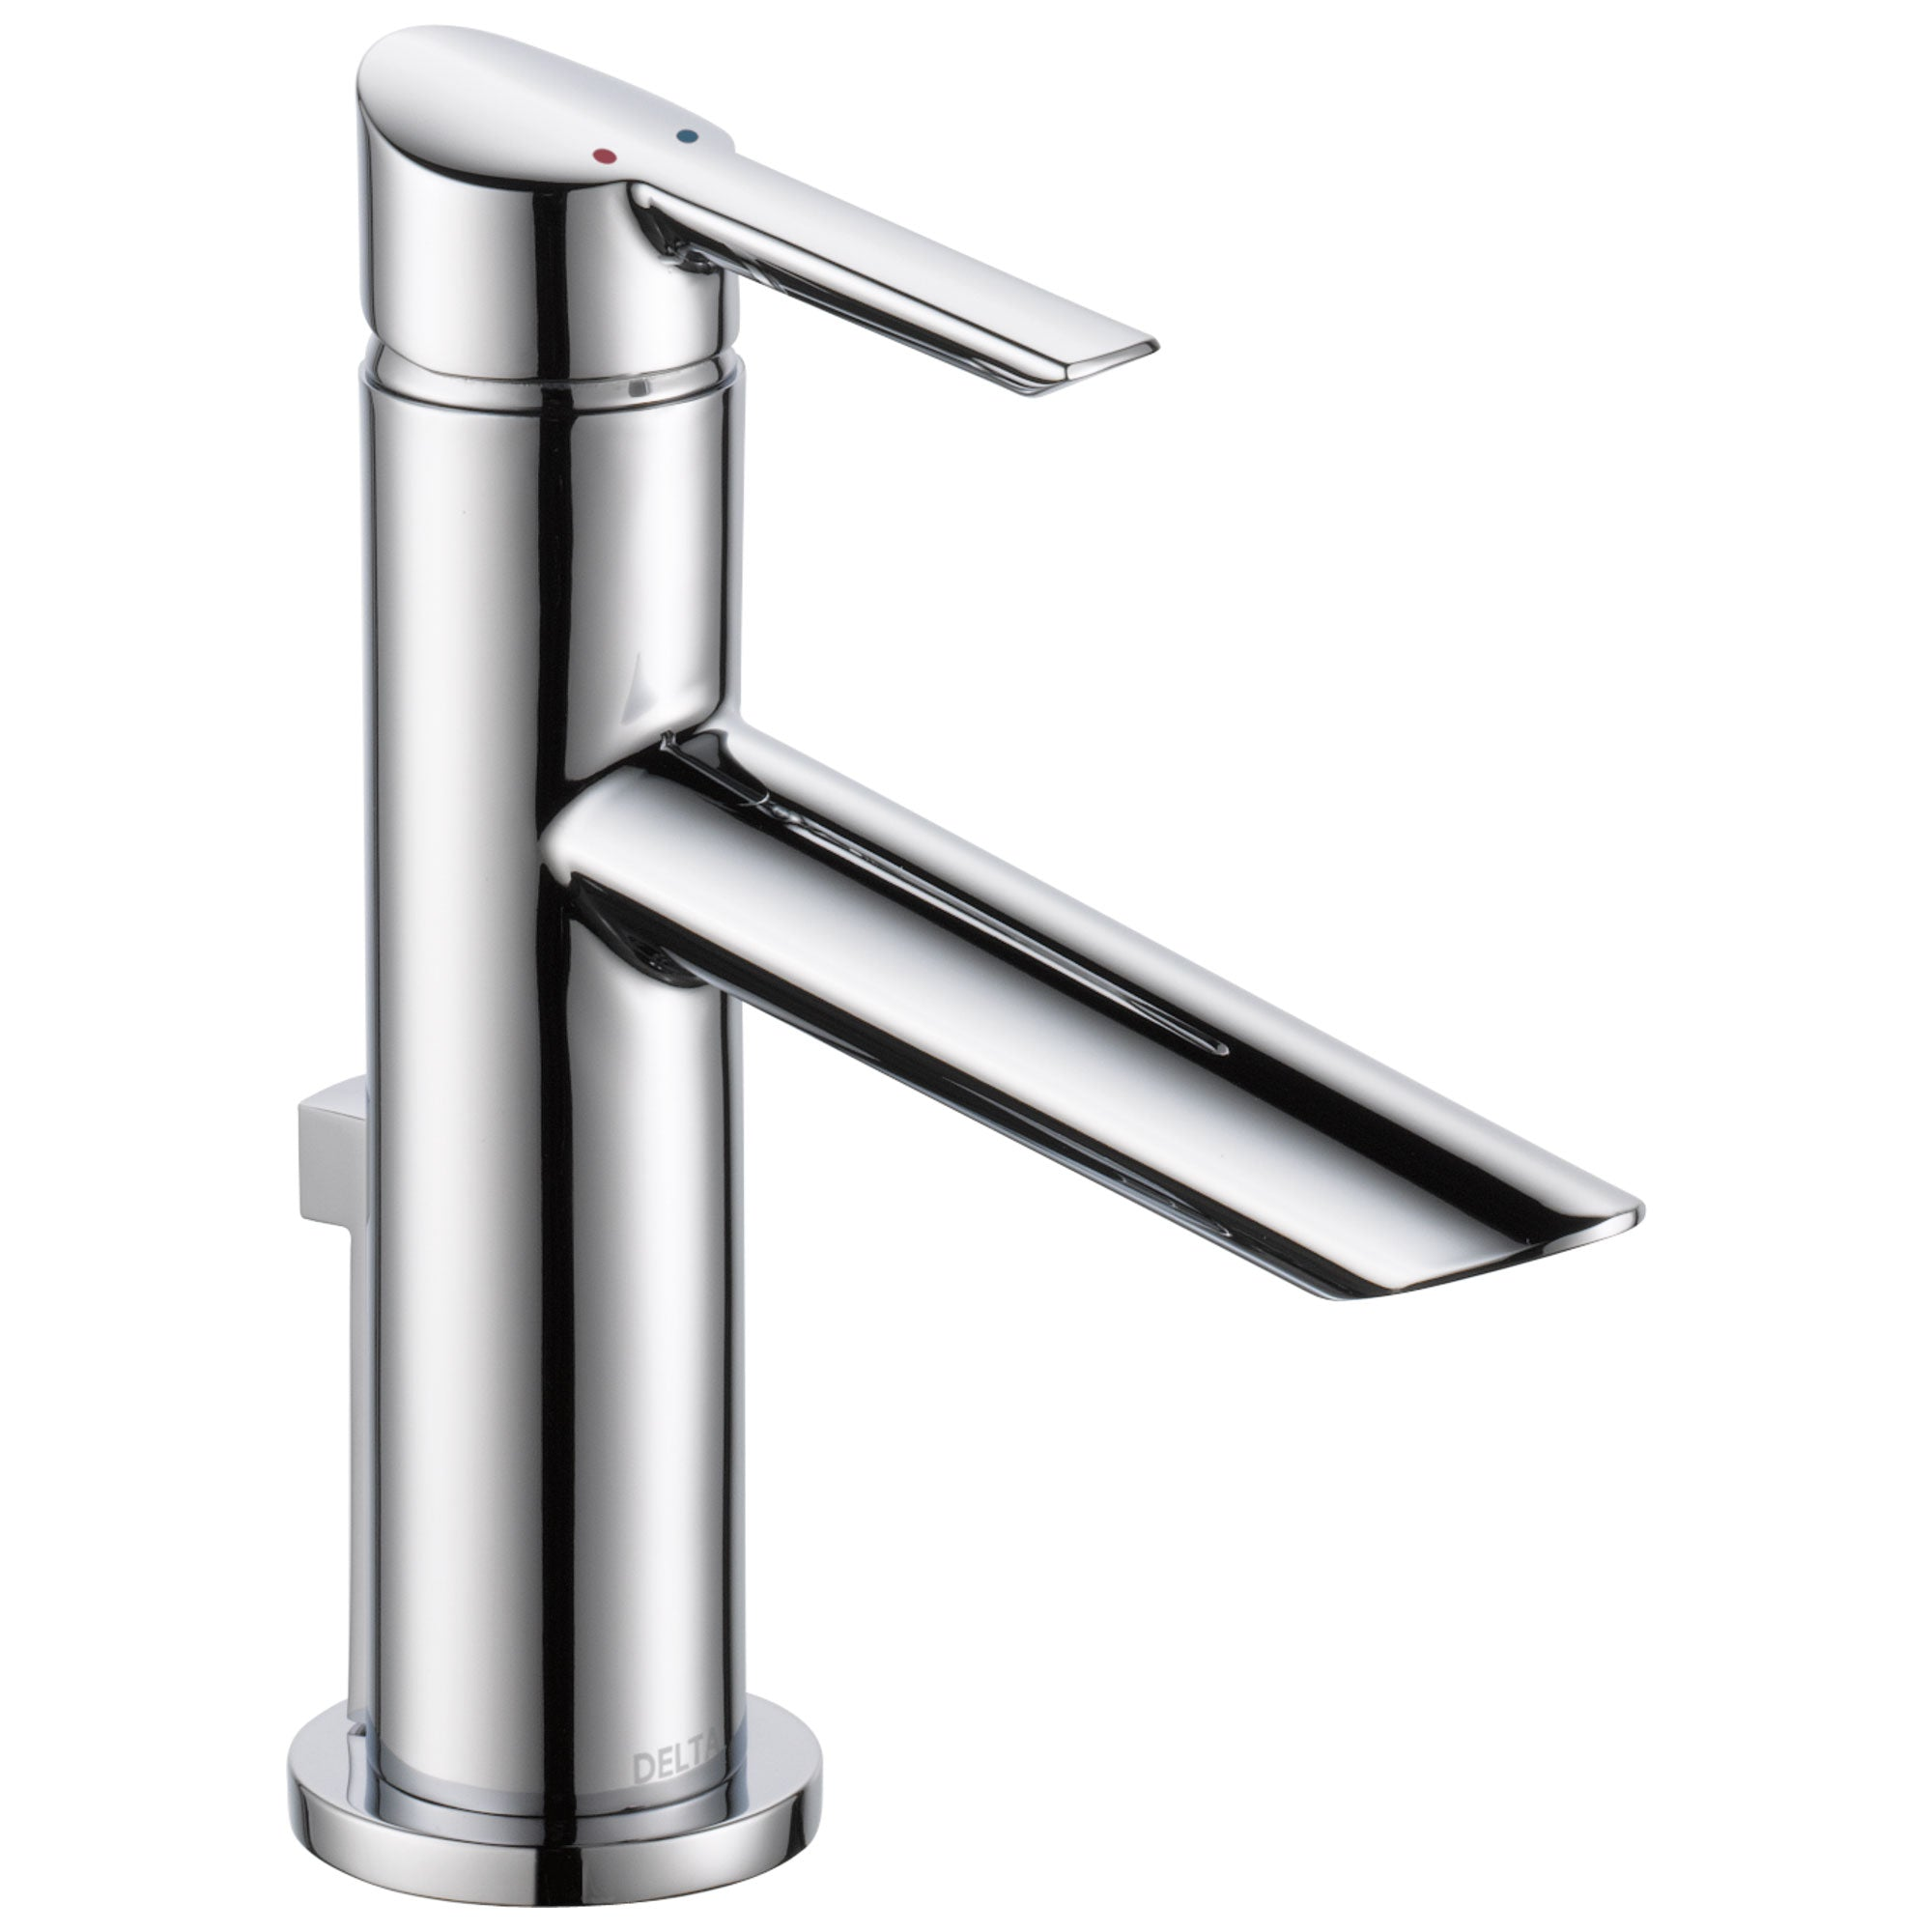 Delta Compel Collection Chrome Finish Single Handle Water Efficient Modern Bathroom Sink Lavatory Faucet with Metal Pop-up Drain D561GPMDST